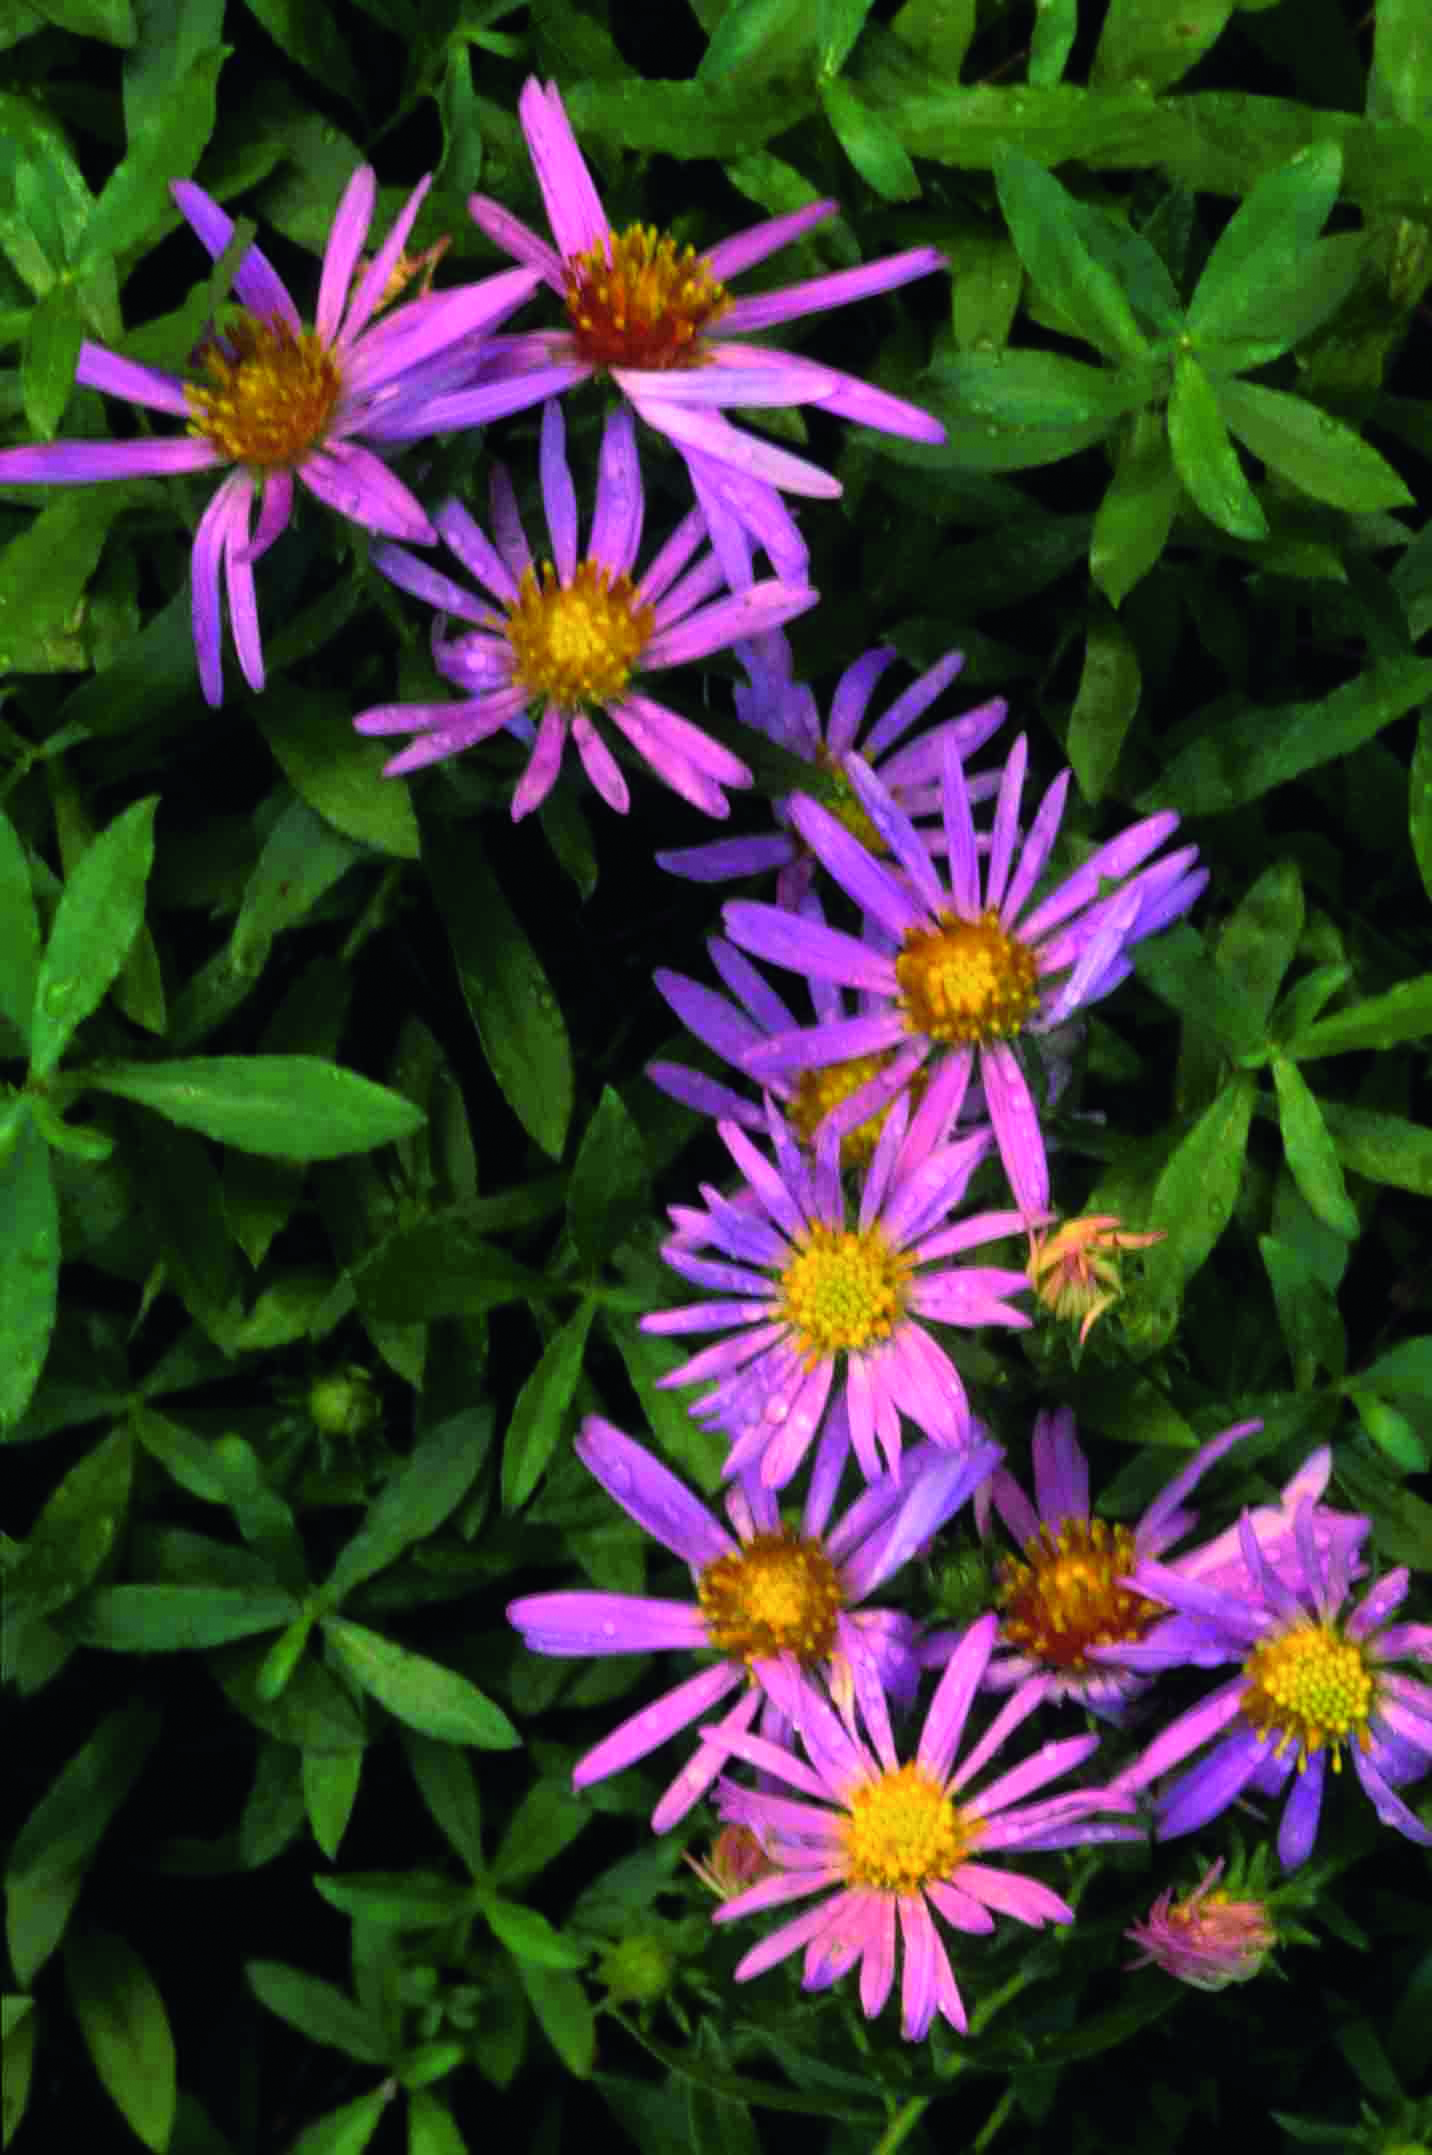 Symphyotrichum oblongifolium (Shale or Aromatic Aster), Photo courtesy of Tom Barnes